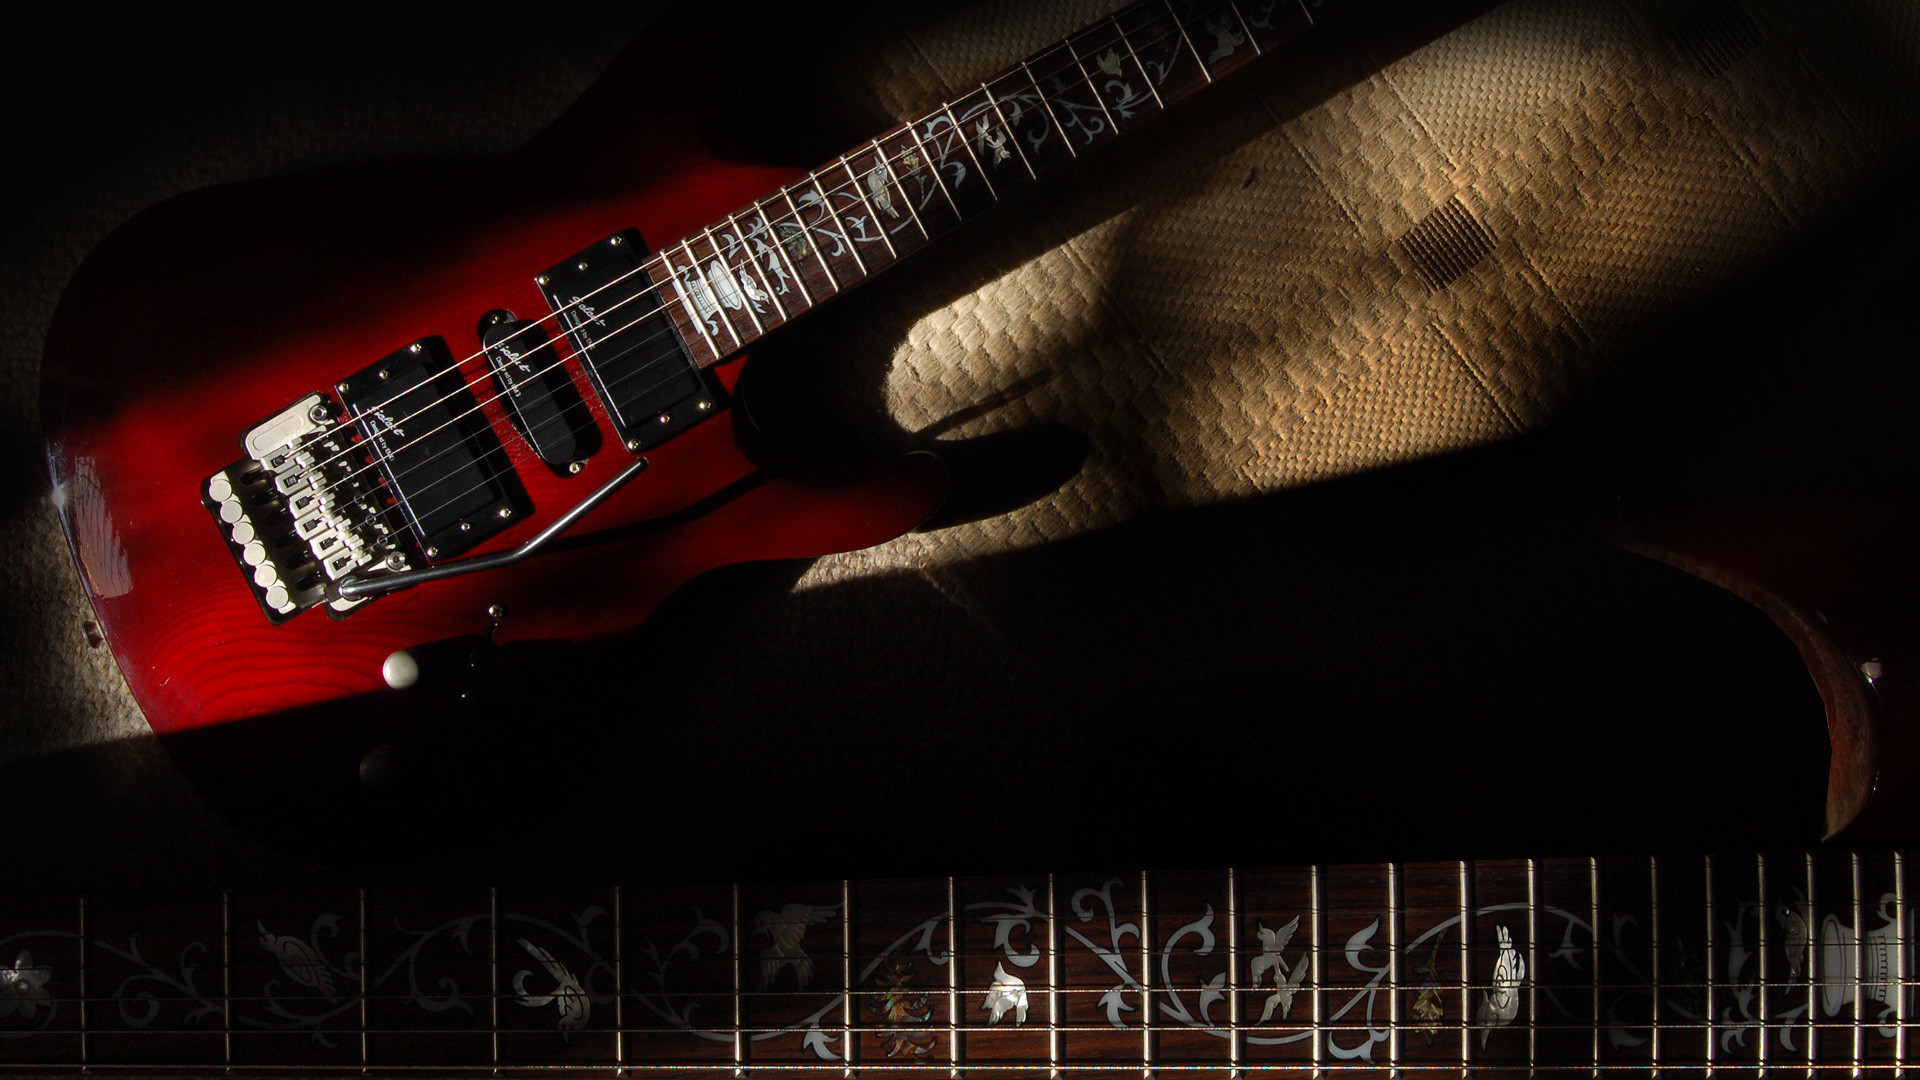 Res: 1920x1080, Guitar wallpaper, Shine Sil 62 electric guitar